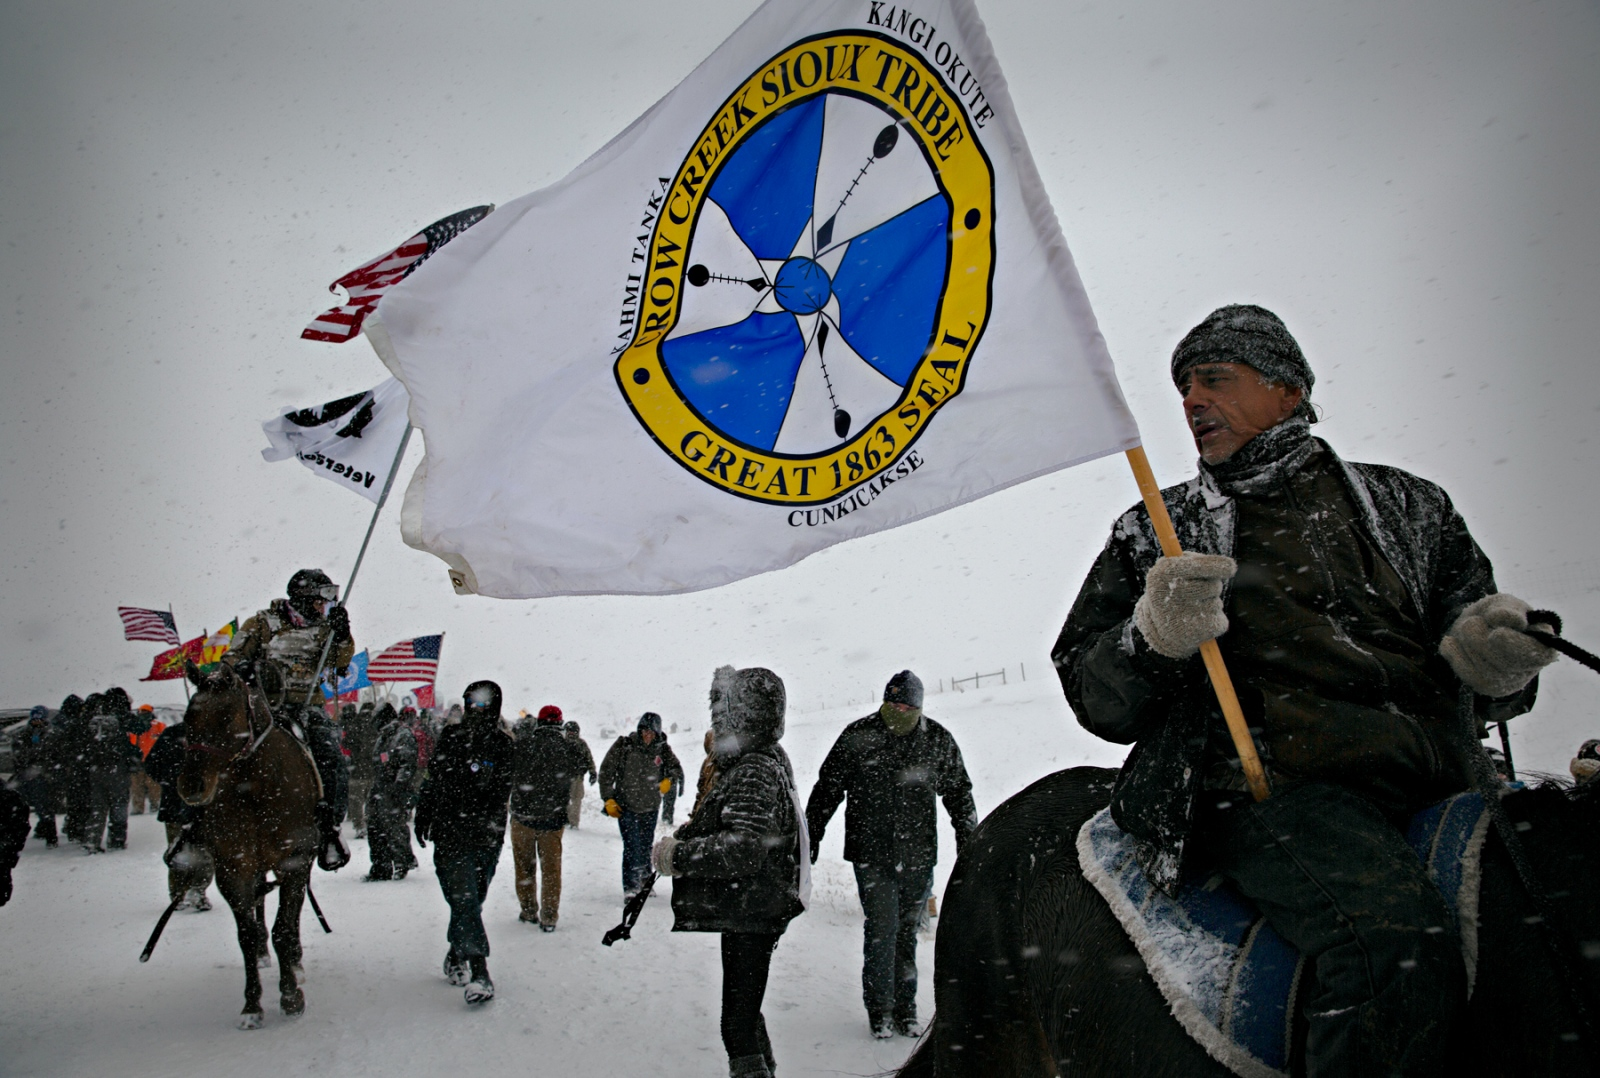 An estimated 2000 military veterans known as Veterans of Peace from around the US arrived at the Oceti Sakowin Camp to provide protection for the Water Protectors against the law enforcement whom they believe to have acted with excessive force against the Native Americans who oppose the Dakota Access Pipe Line.